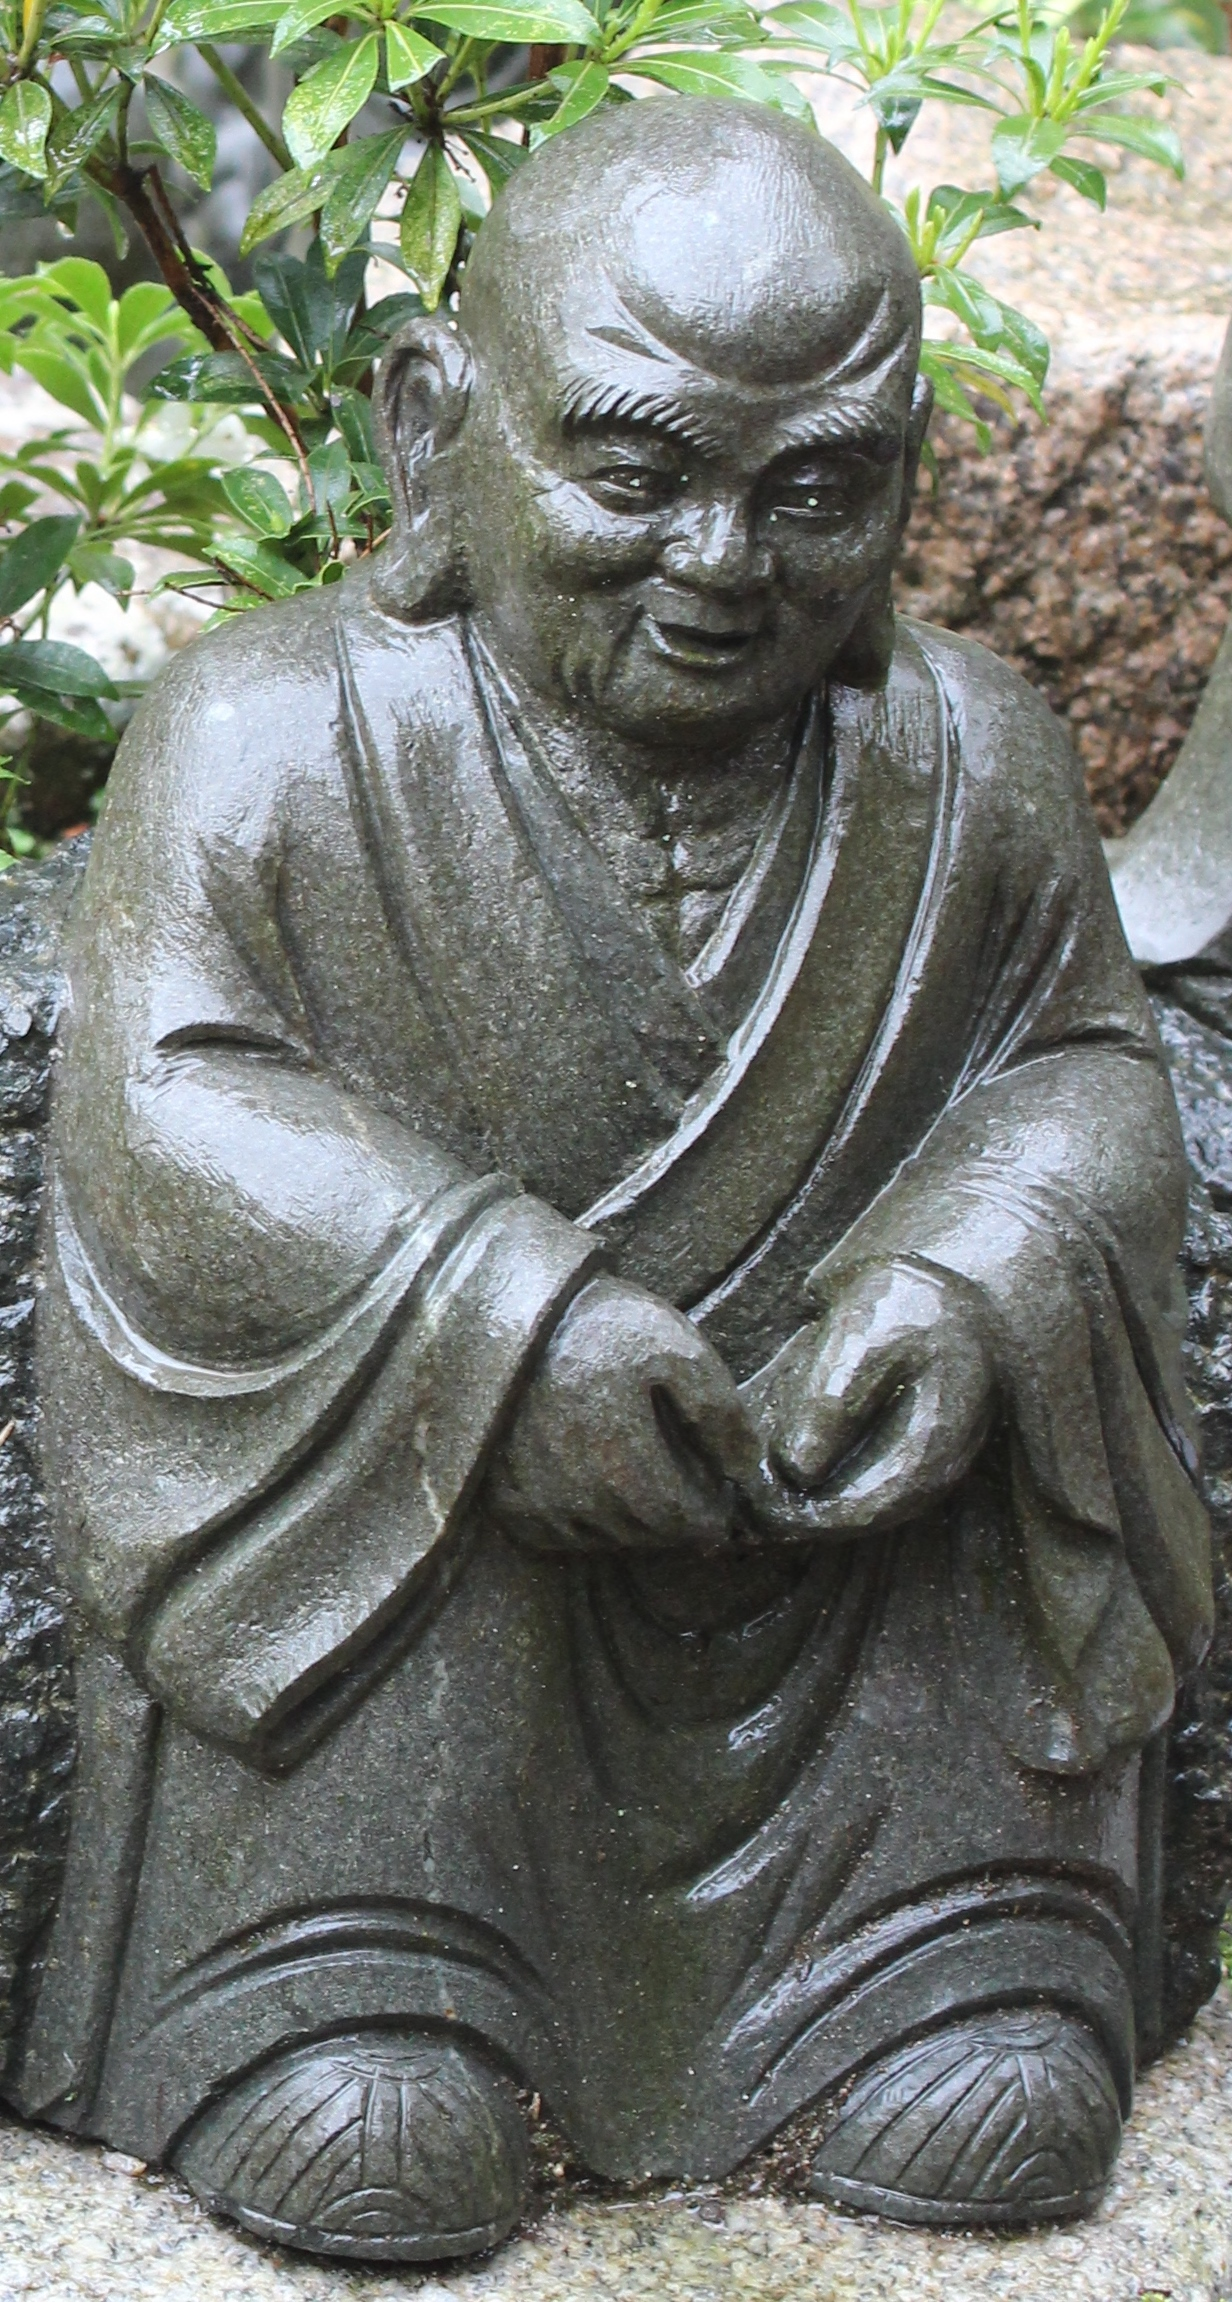 whitelaw buddhist singles Buddhist singles - welcome to the simple online dating site, here you can chat, date, or just flirt with men or women sign up for free and send messages to single women or man singles who do not hardly ever connects are missing out on being sent messages.